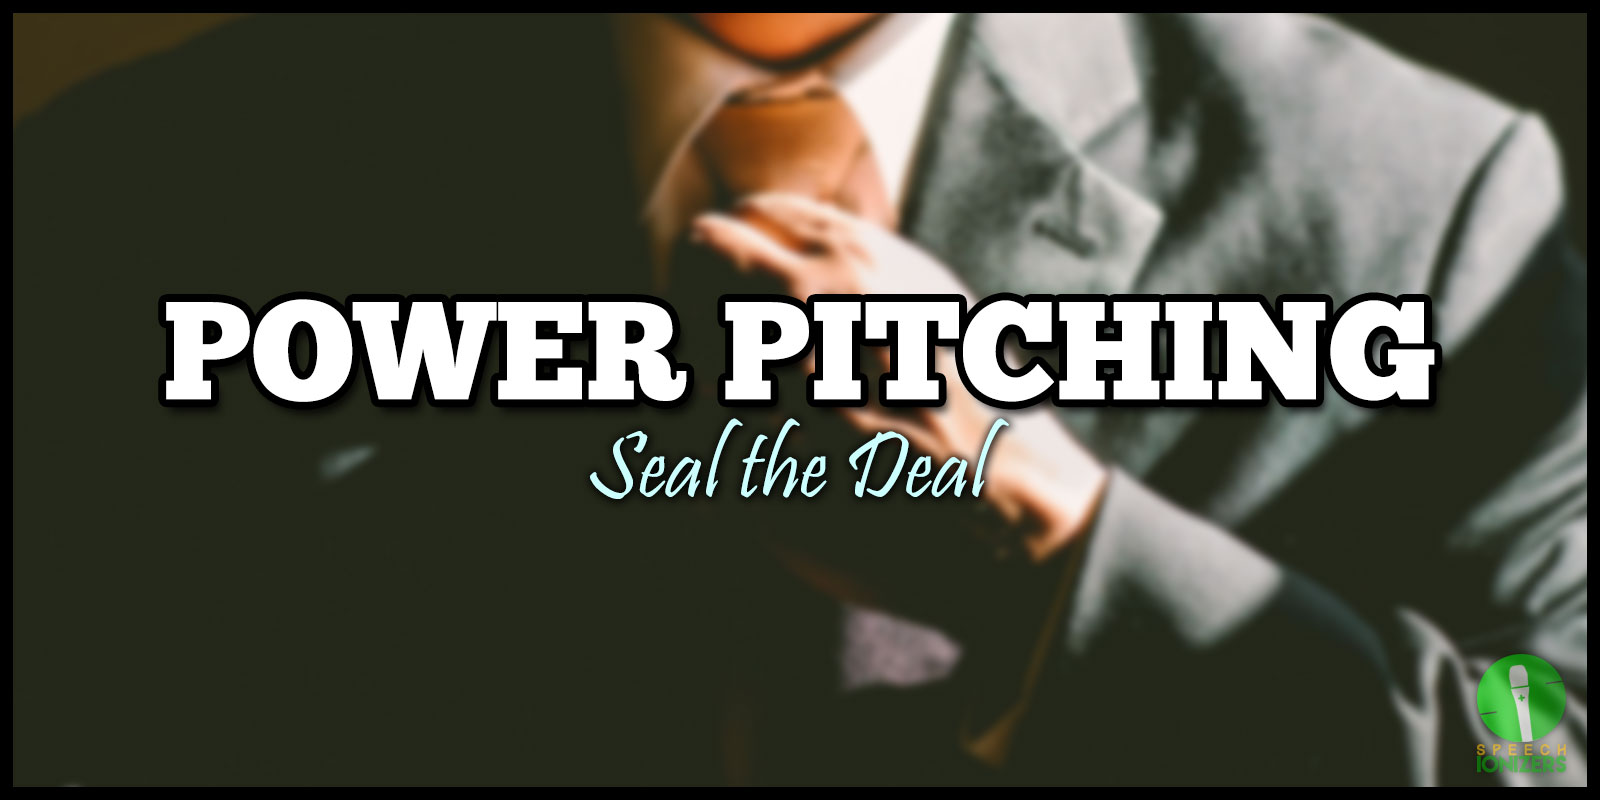 Power Pitching